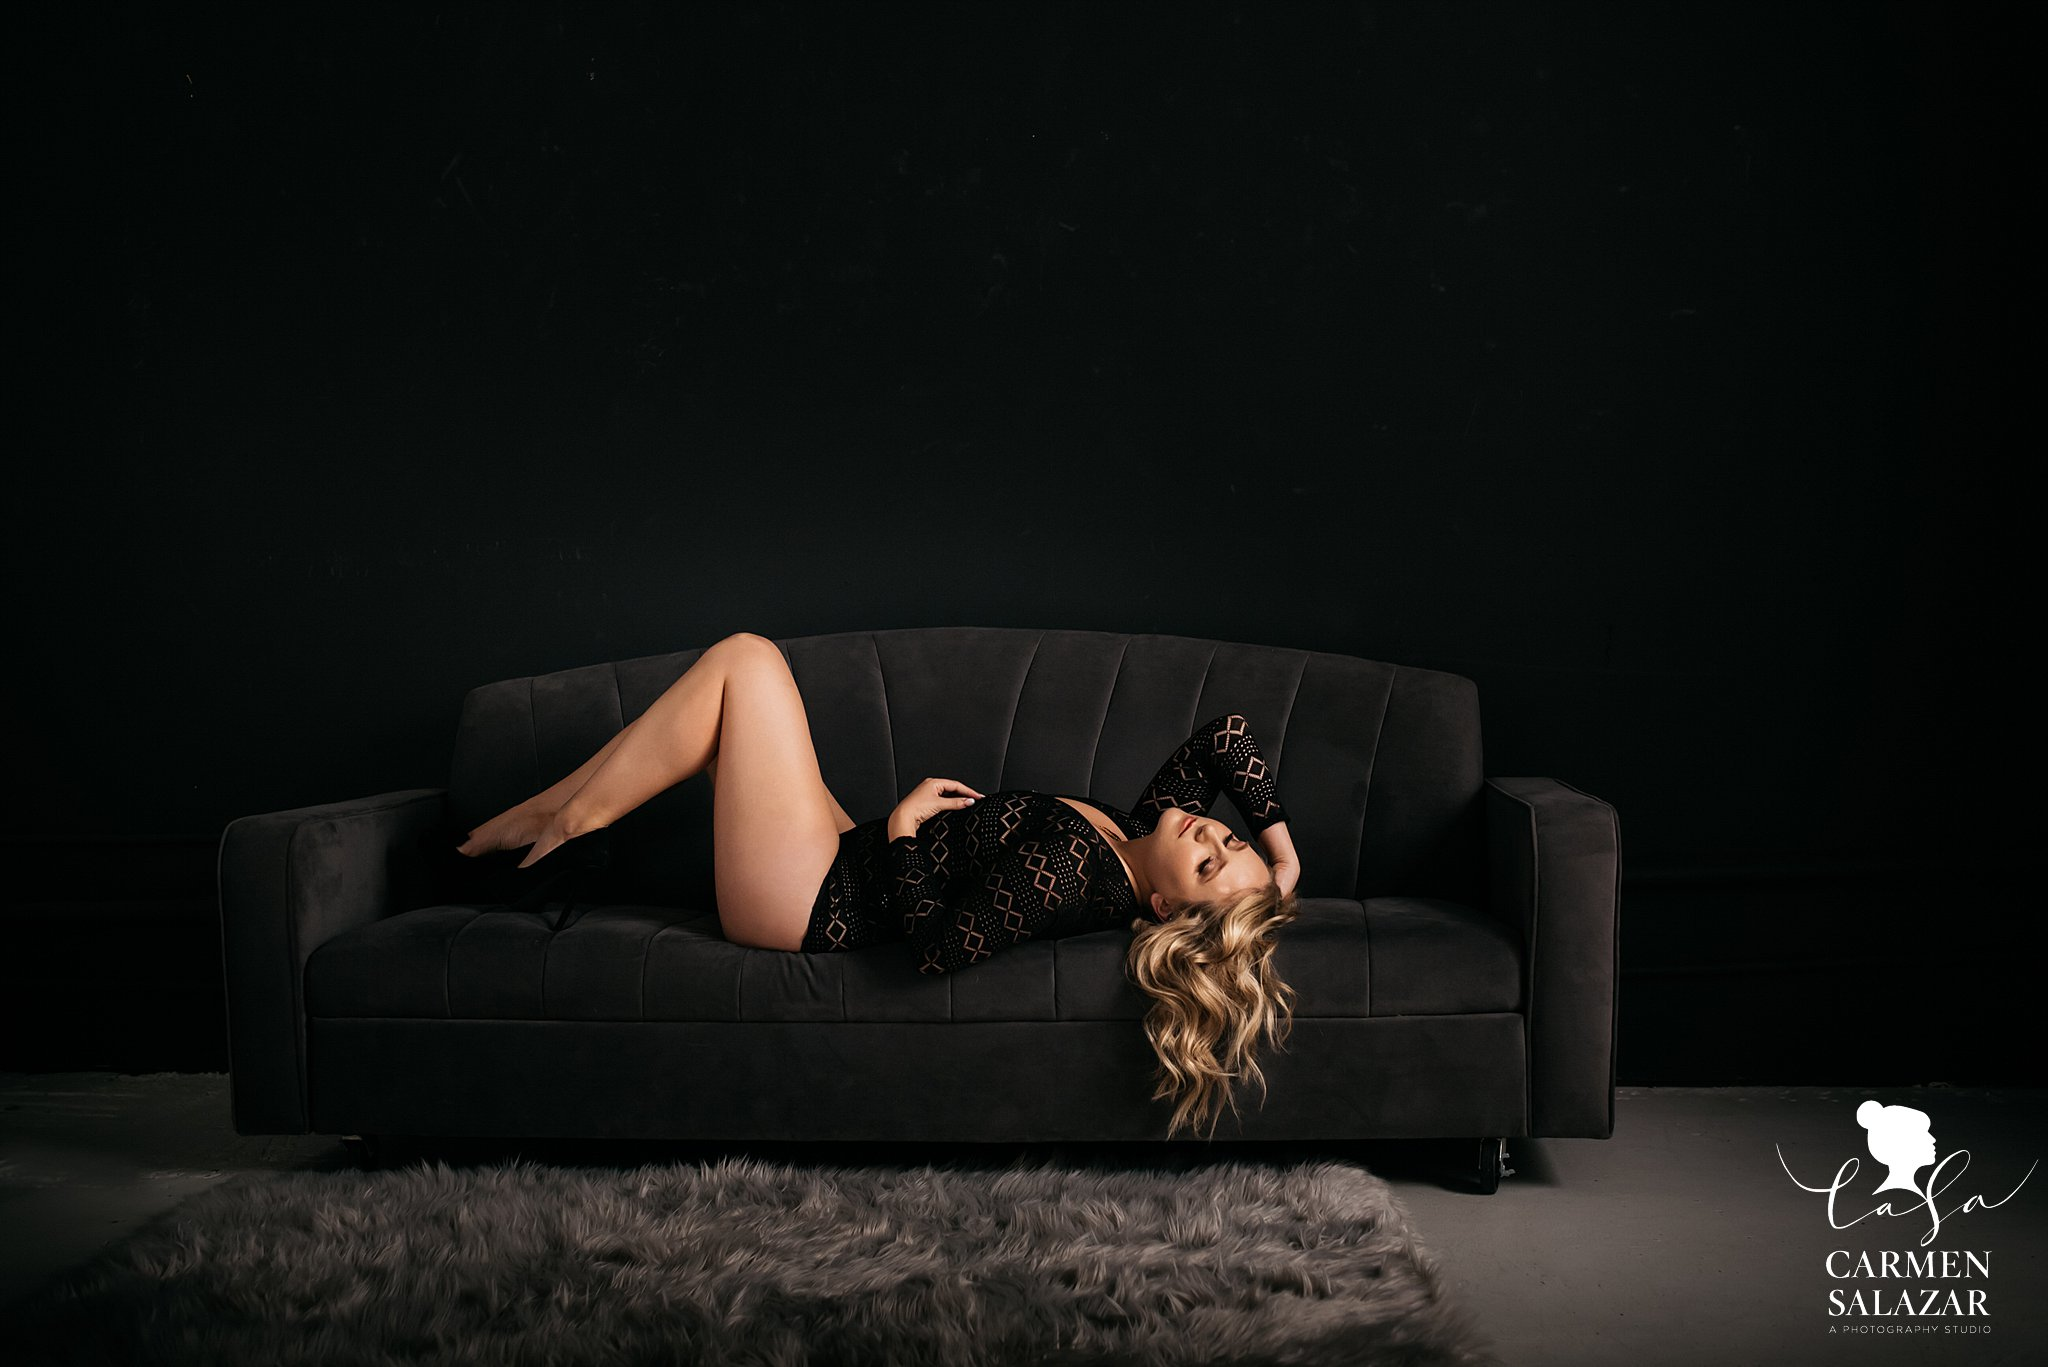 beautiful blonde woman in boudoir photo on couch